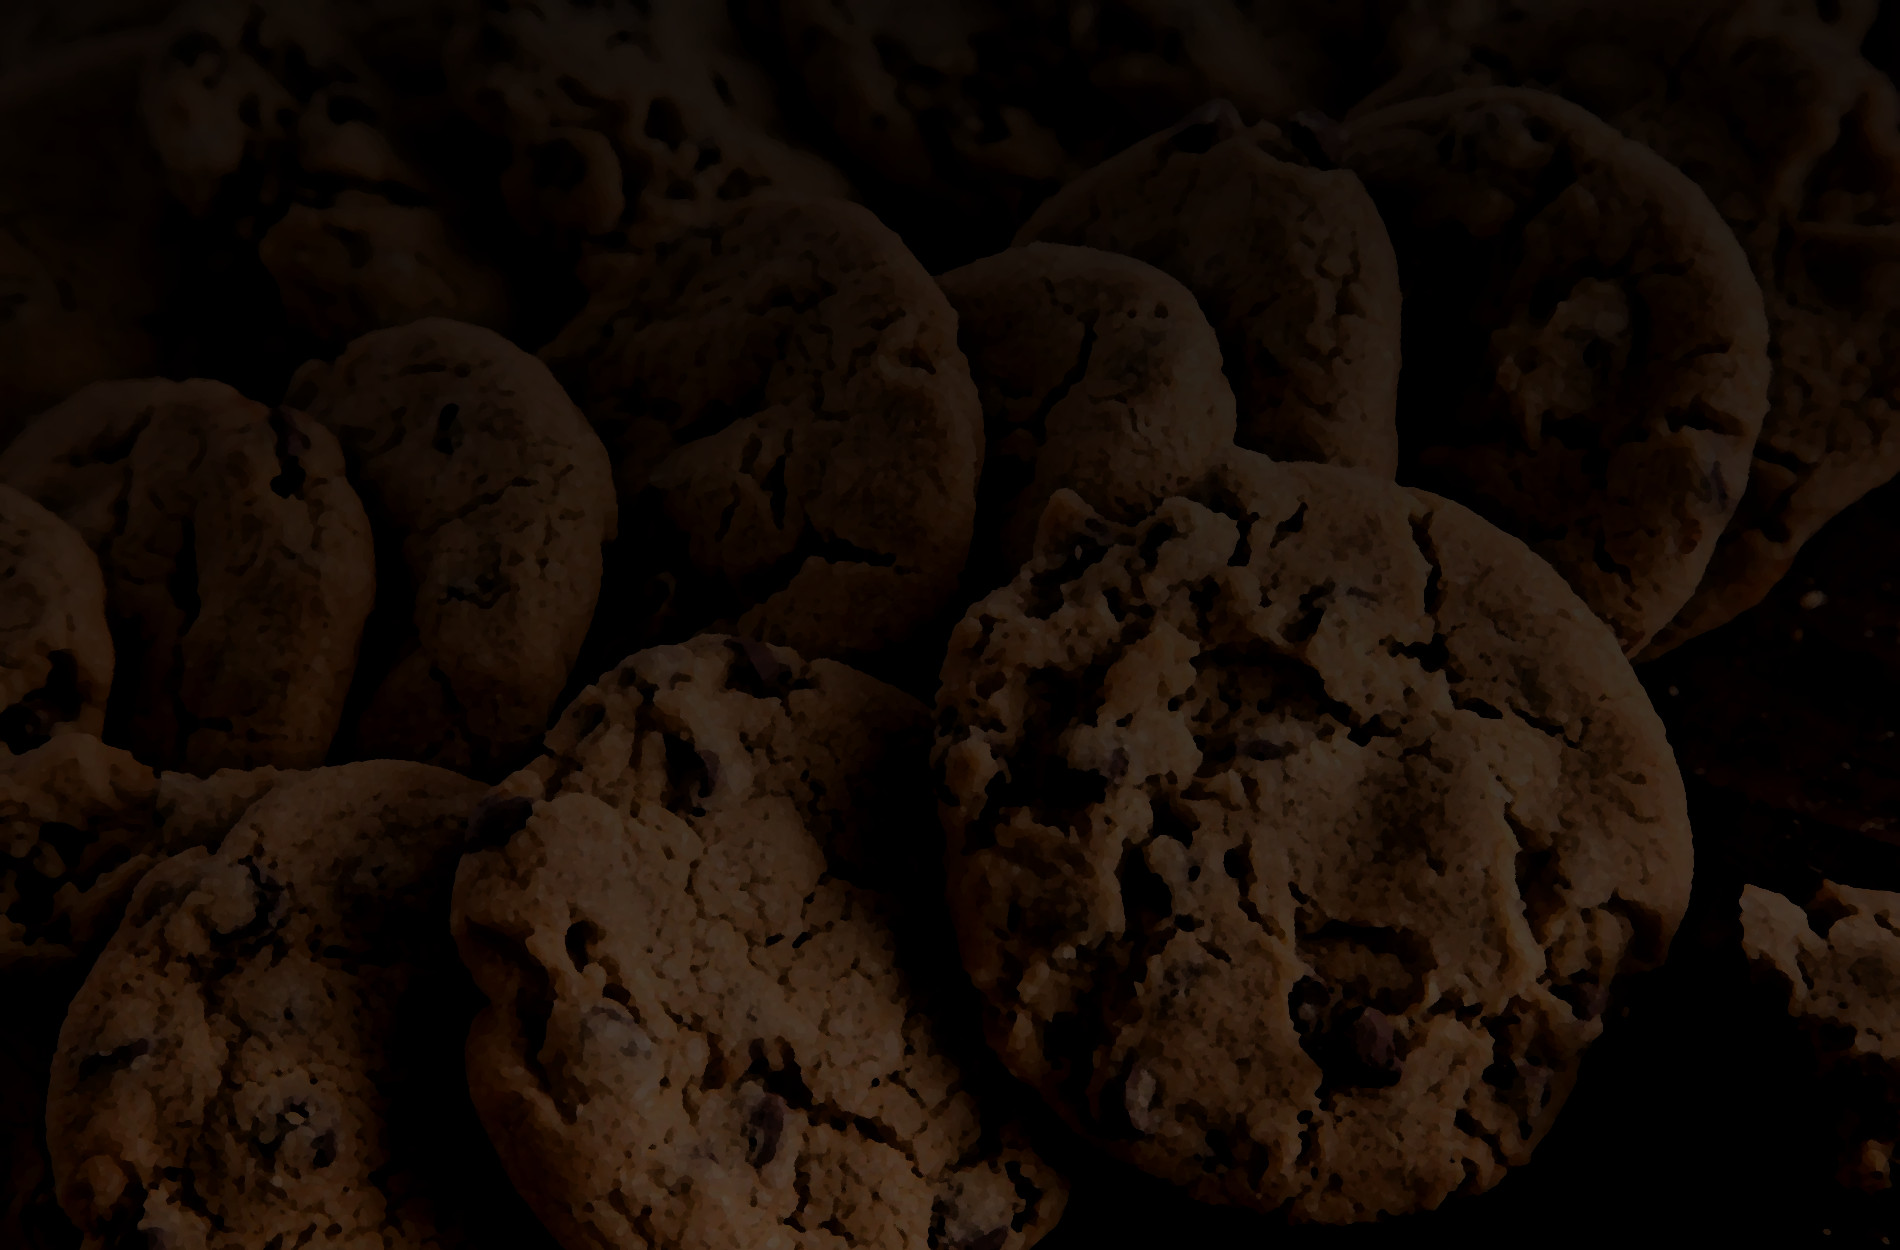 www.i-dont-care-about-cookies.eu